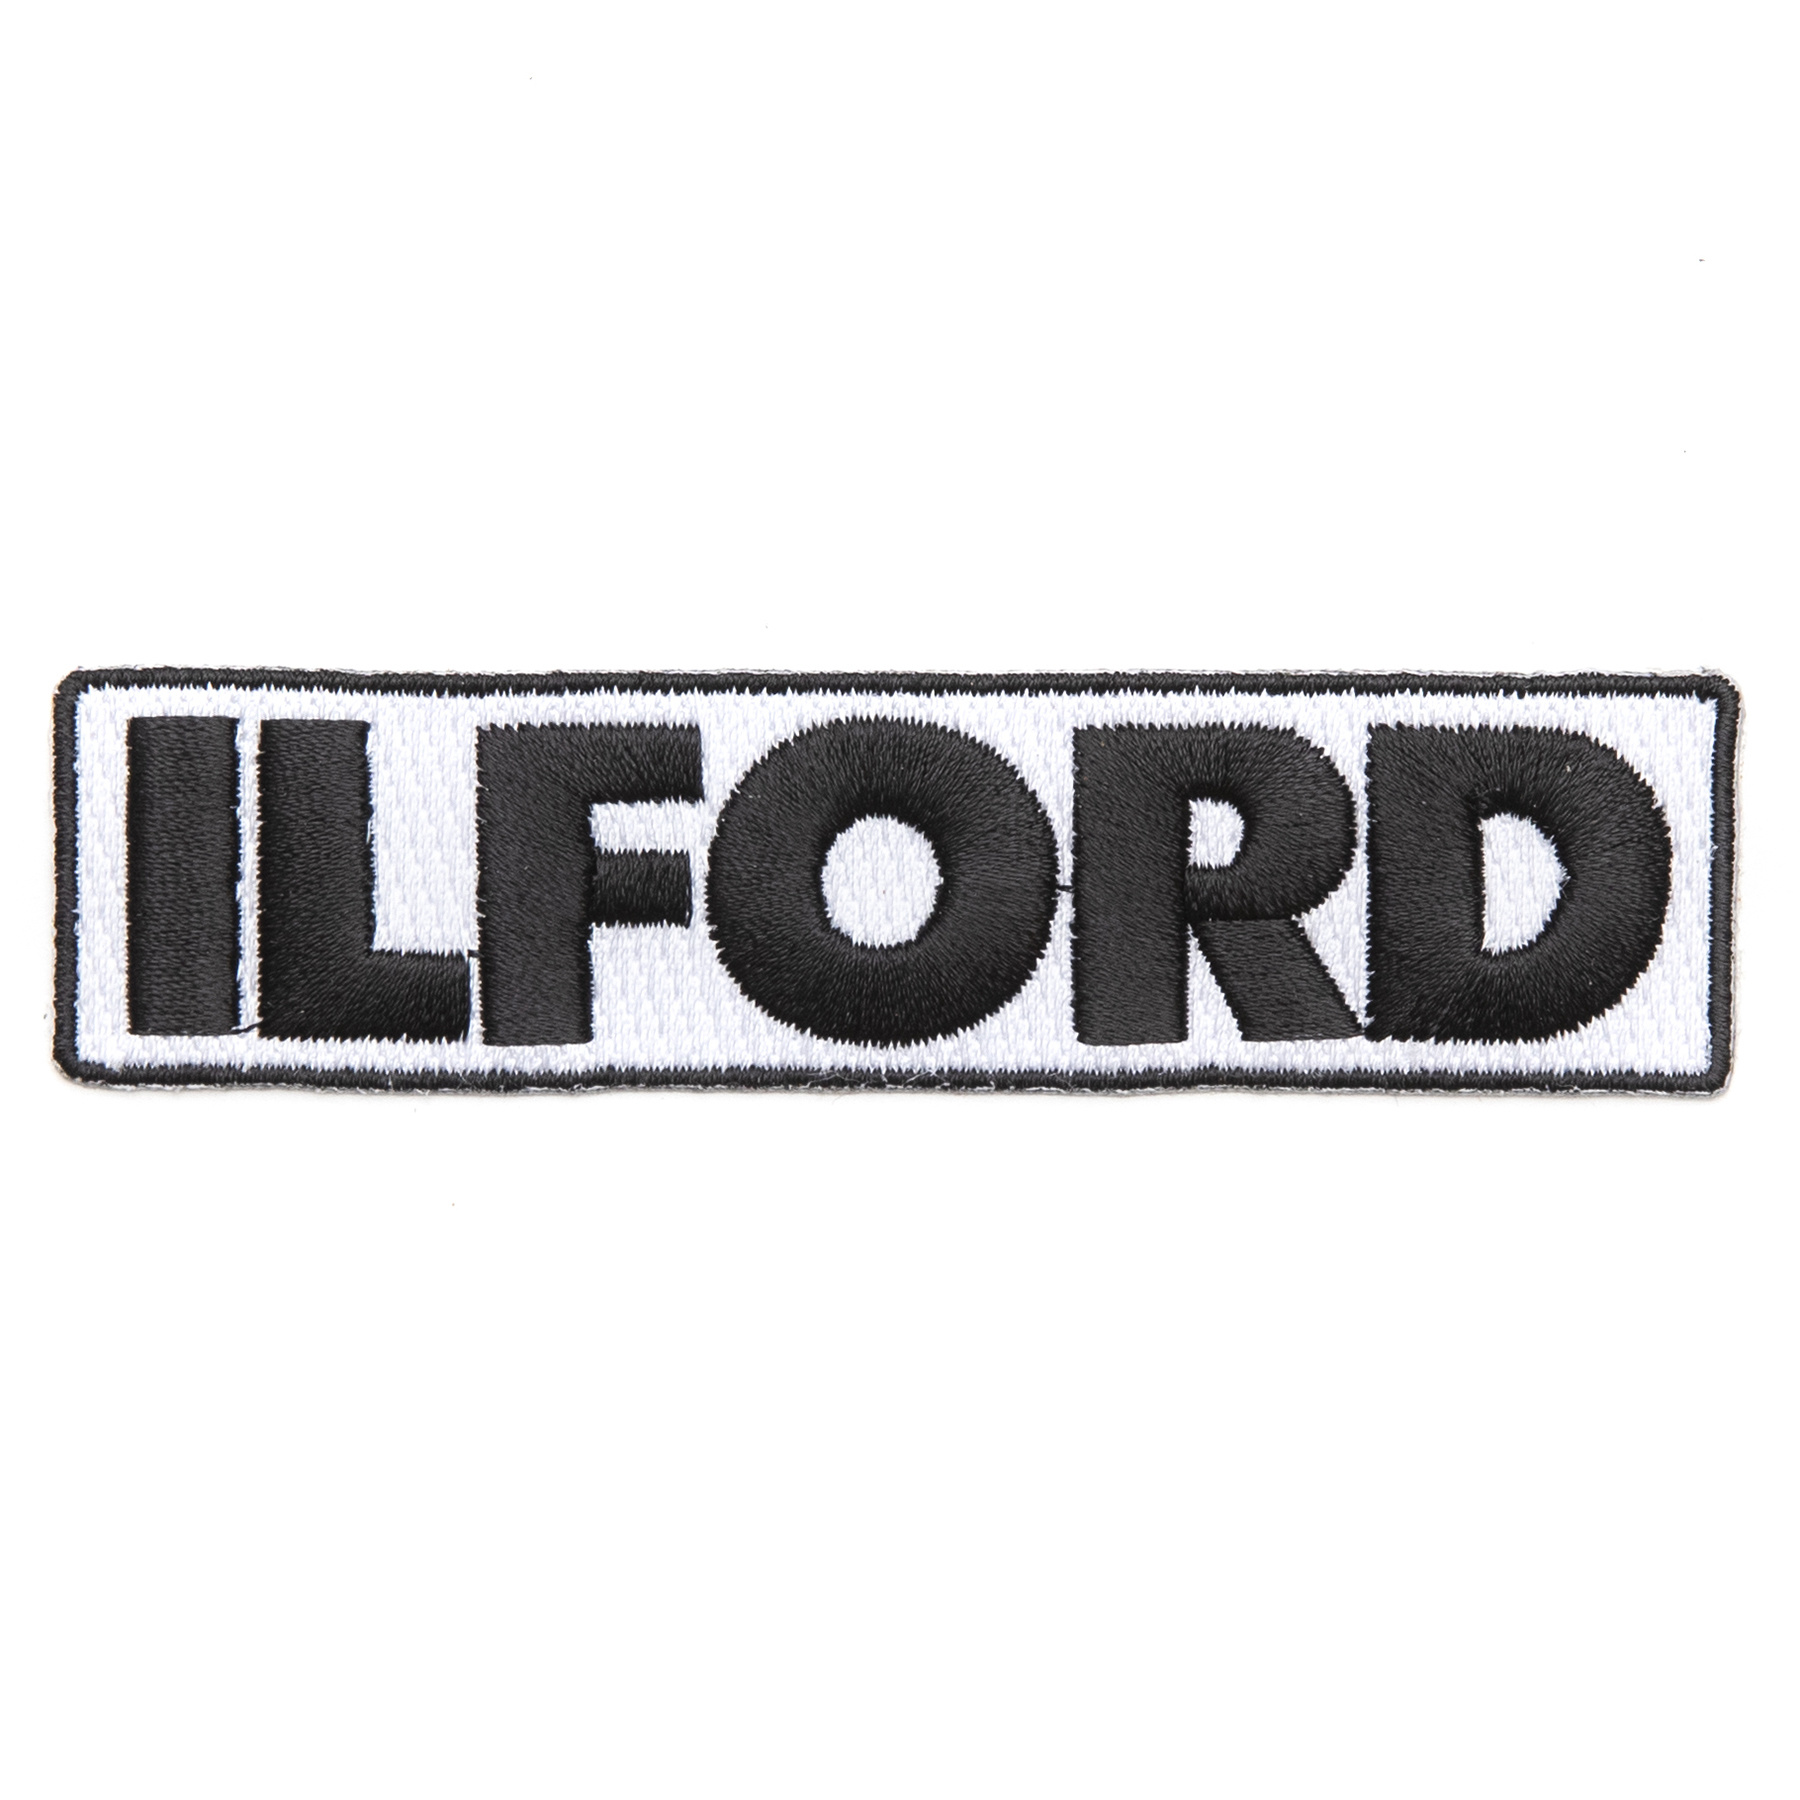 ILFORD Patch